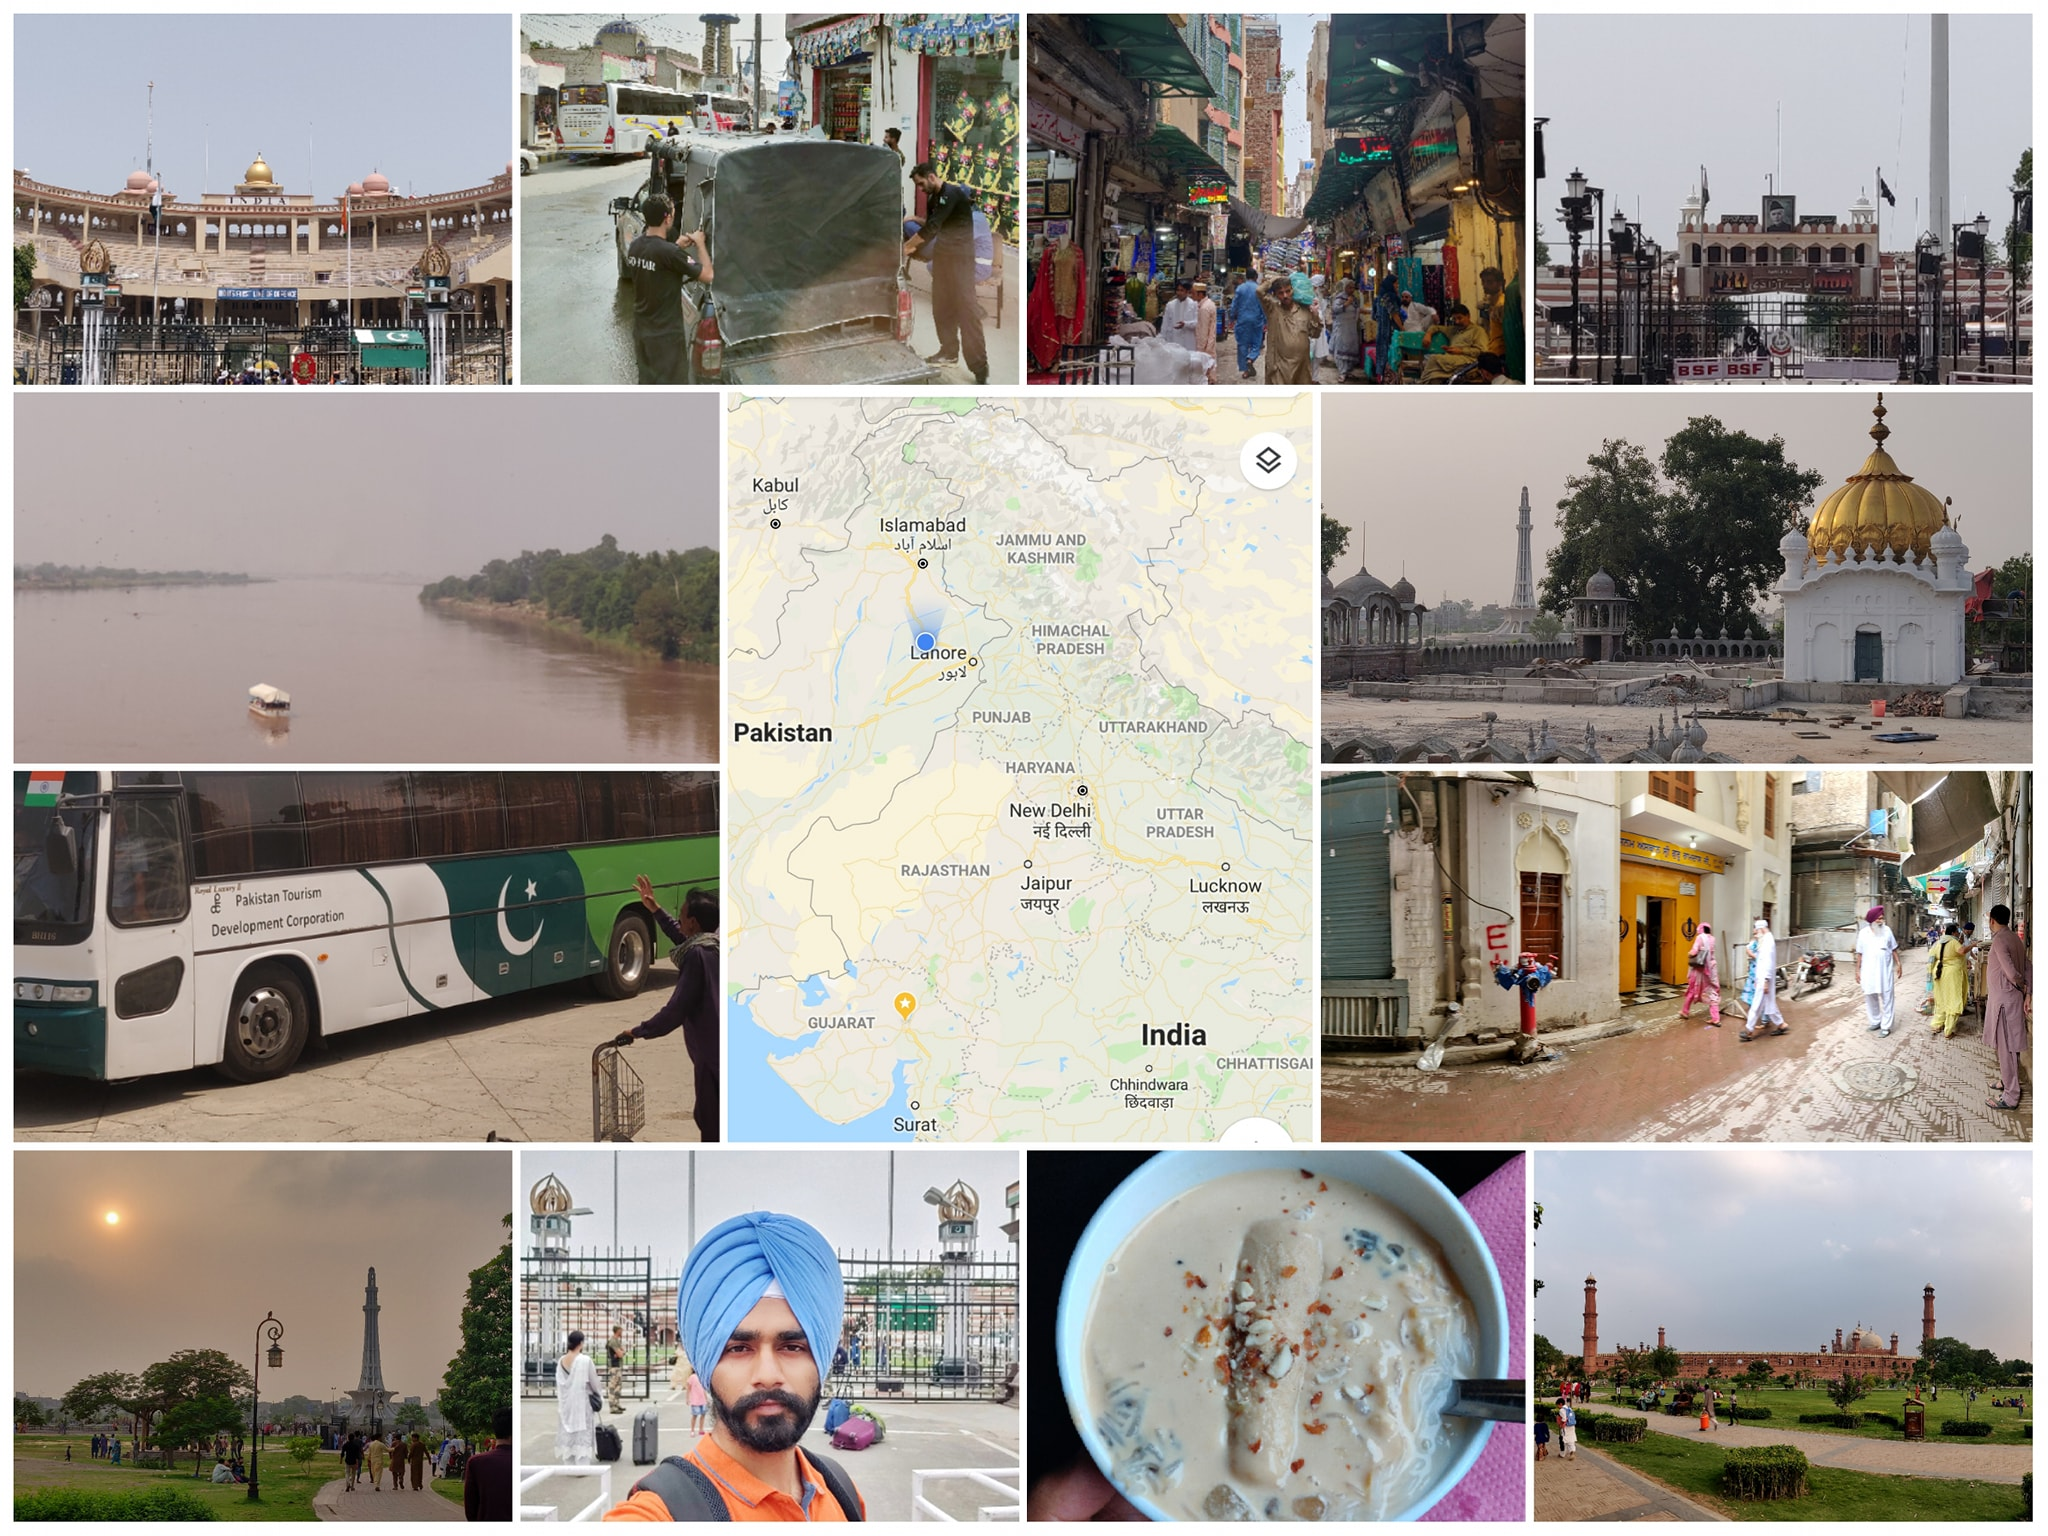 Glimpse of the visit of Snehdeep traveling from India to Pakistan